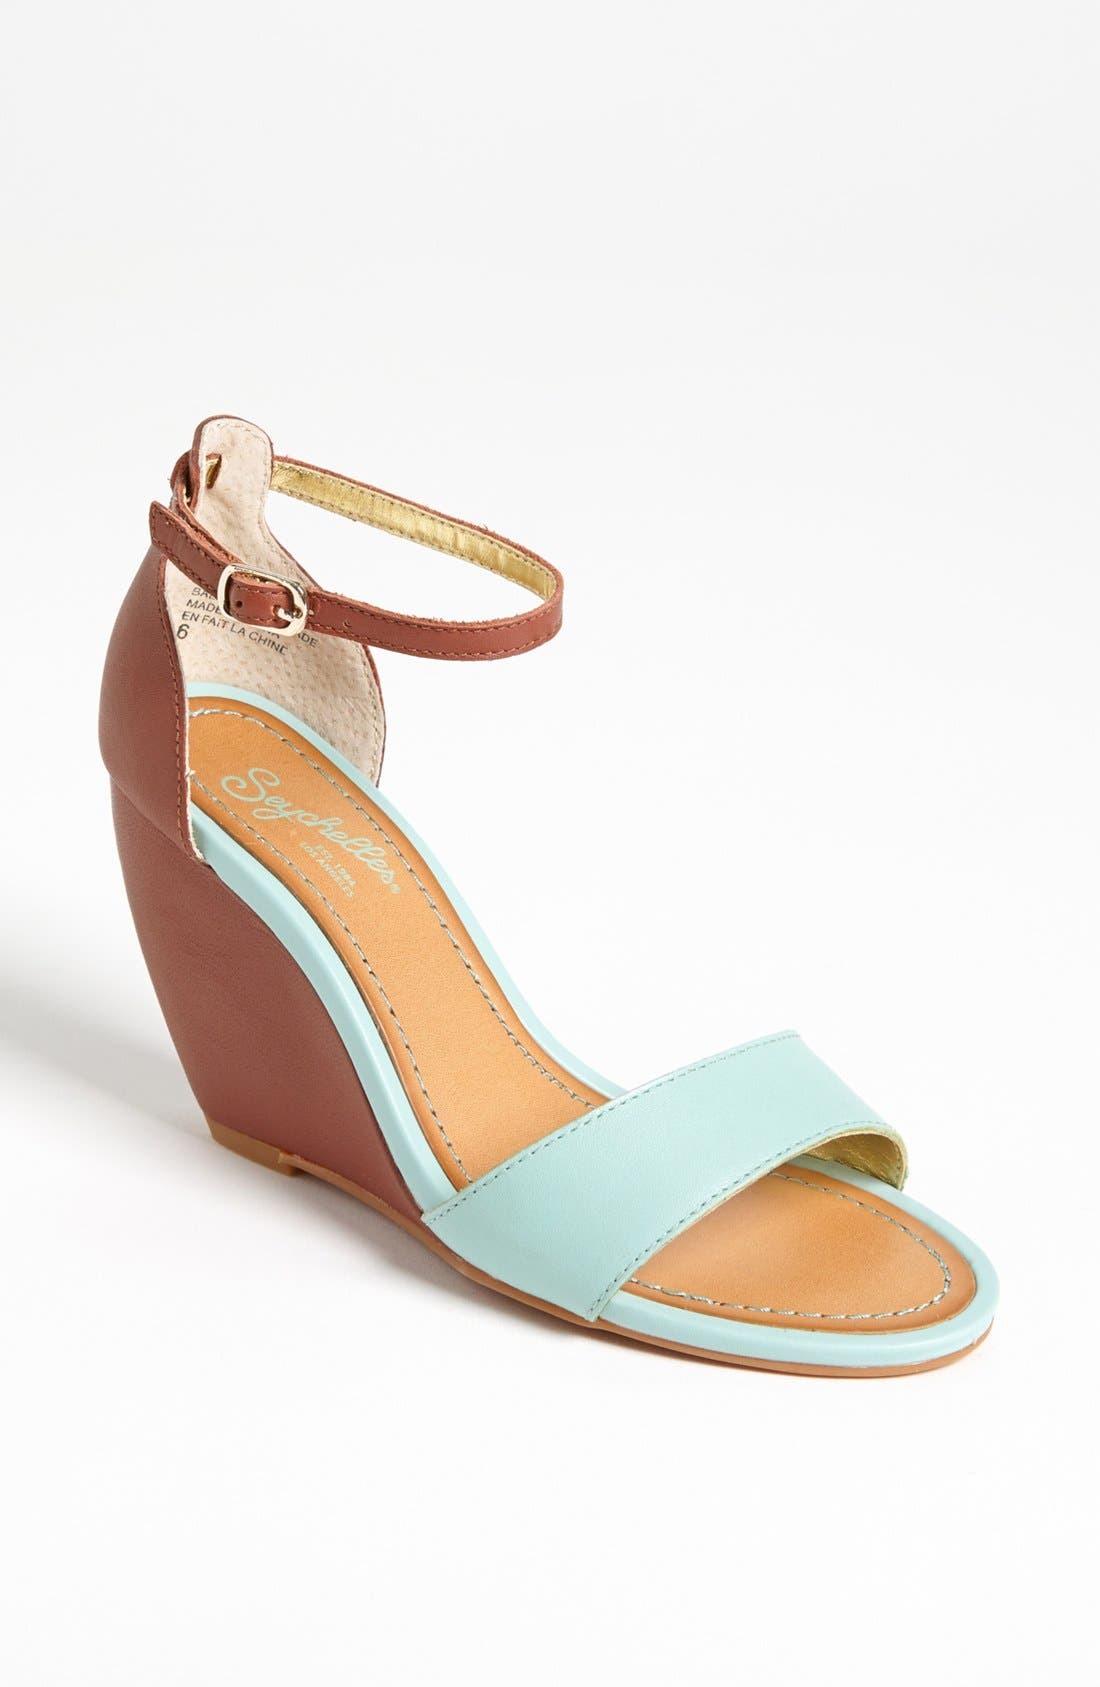 Alternate Image 1 Selected - Seychelles 'Thyme' Sandal